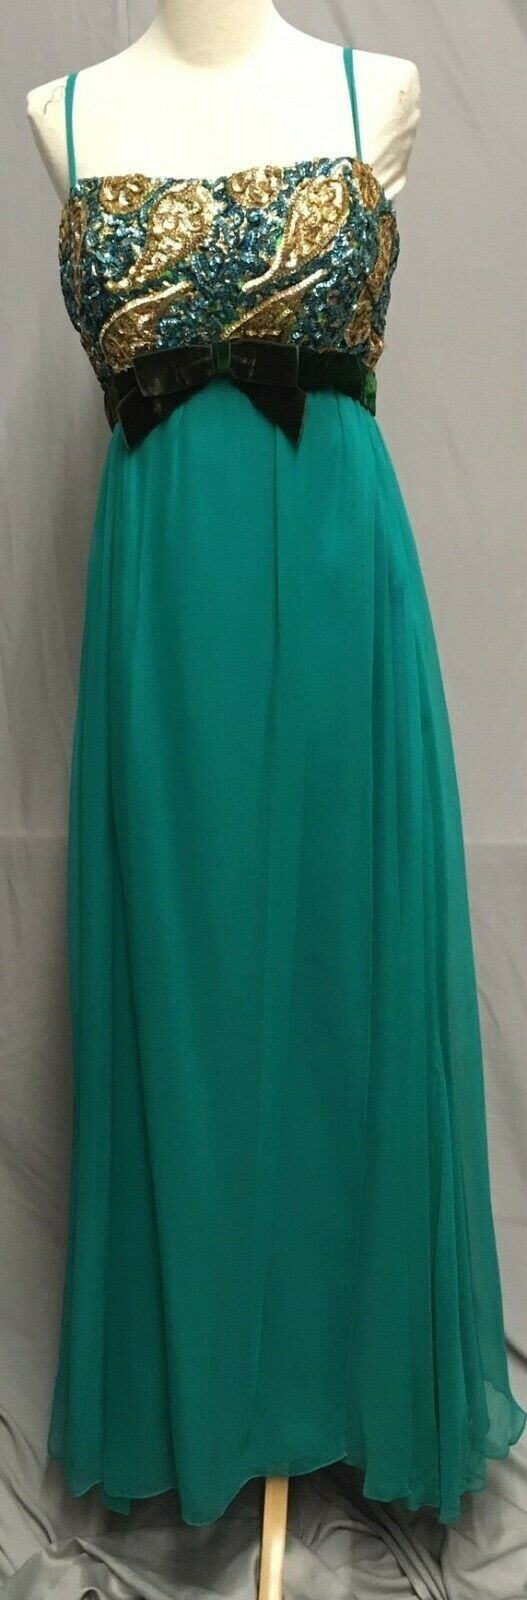 #20-168, 1950's To Early 1960's Sequin & Silk Chiffon Evening Dress